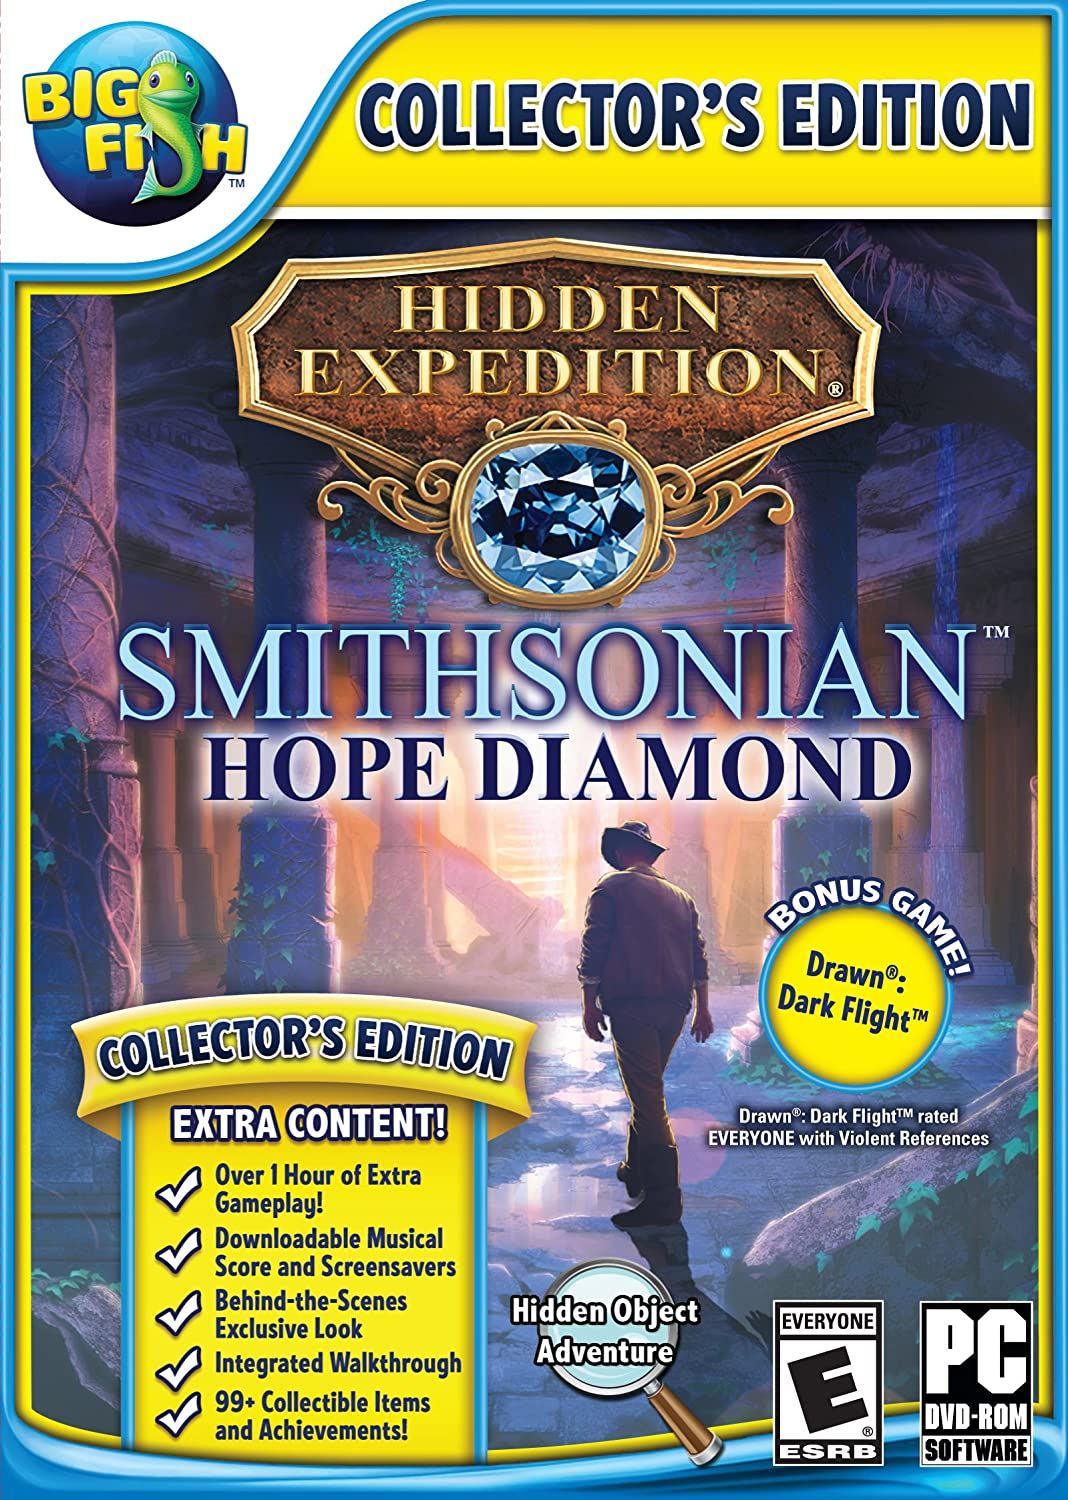 Big Fish: Hidden Expedition 6: The Smithsonian's Hope Diamond - PC